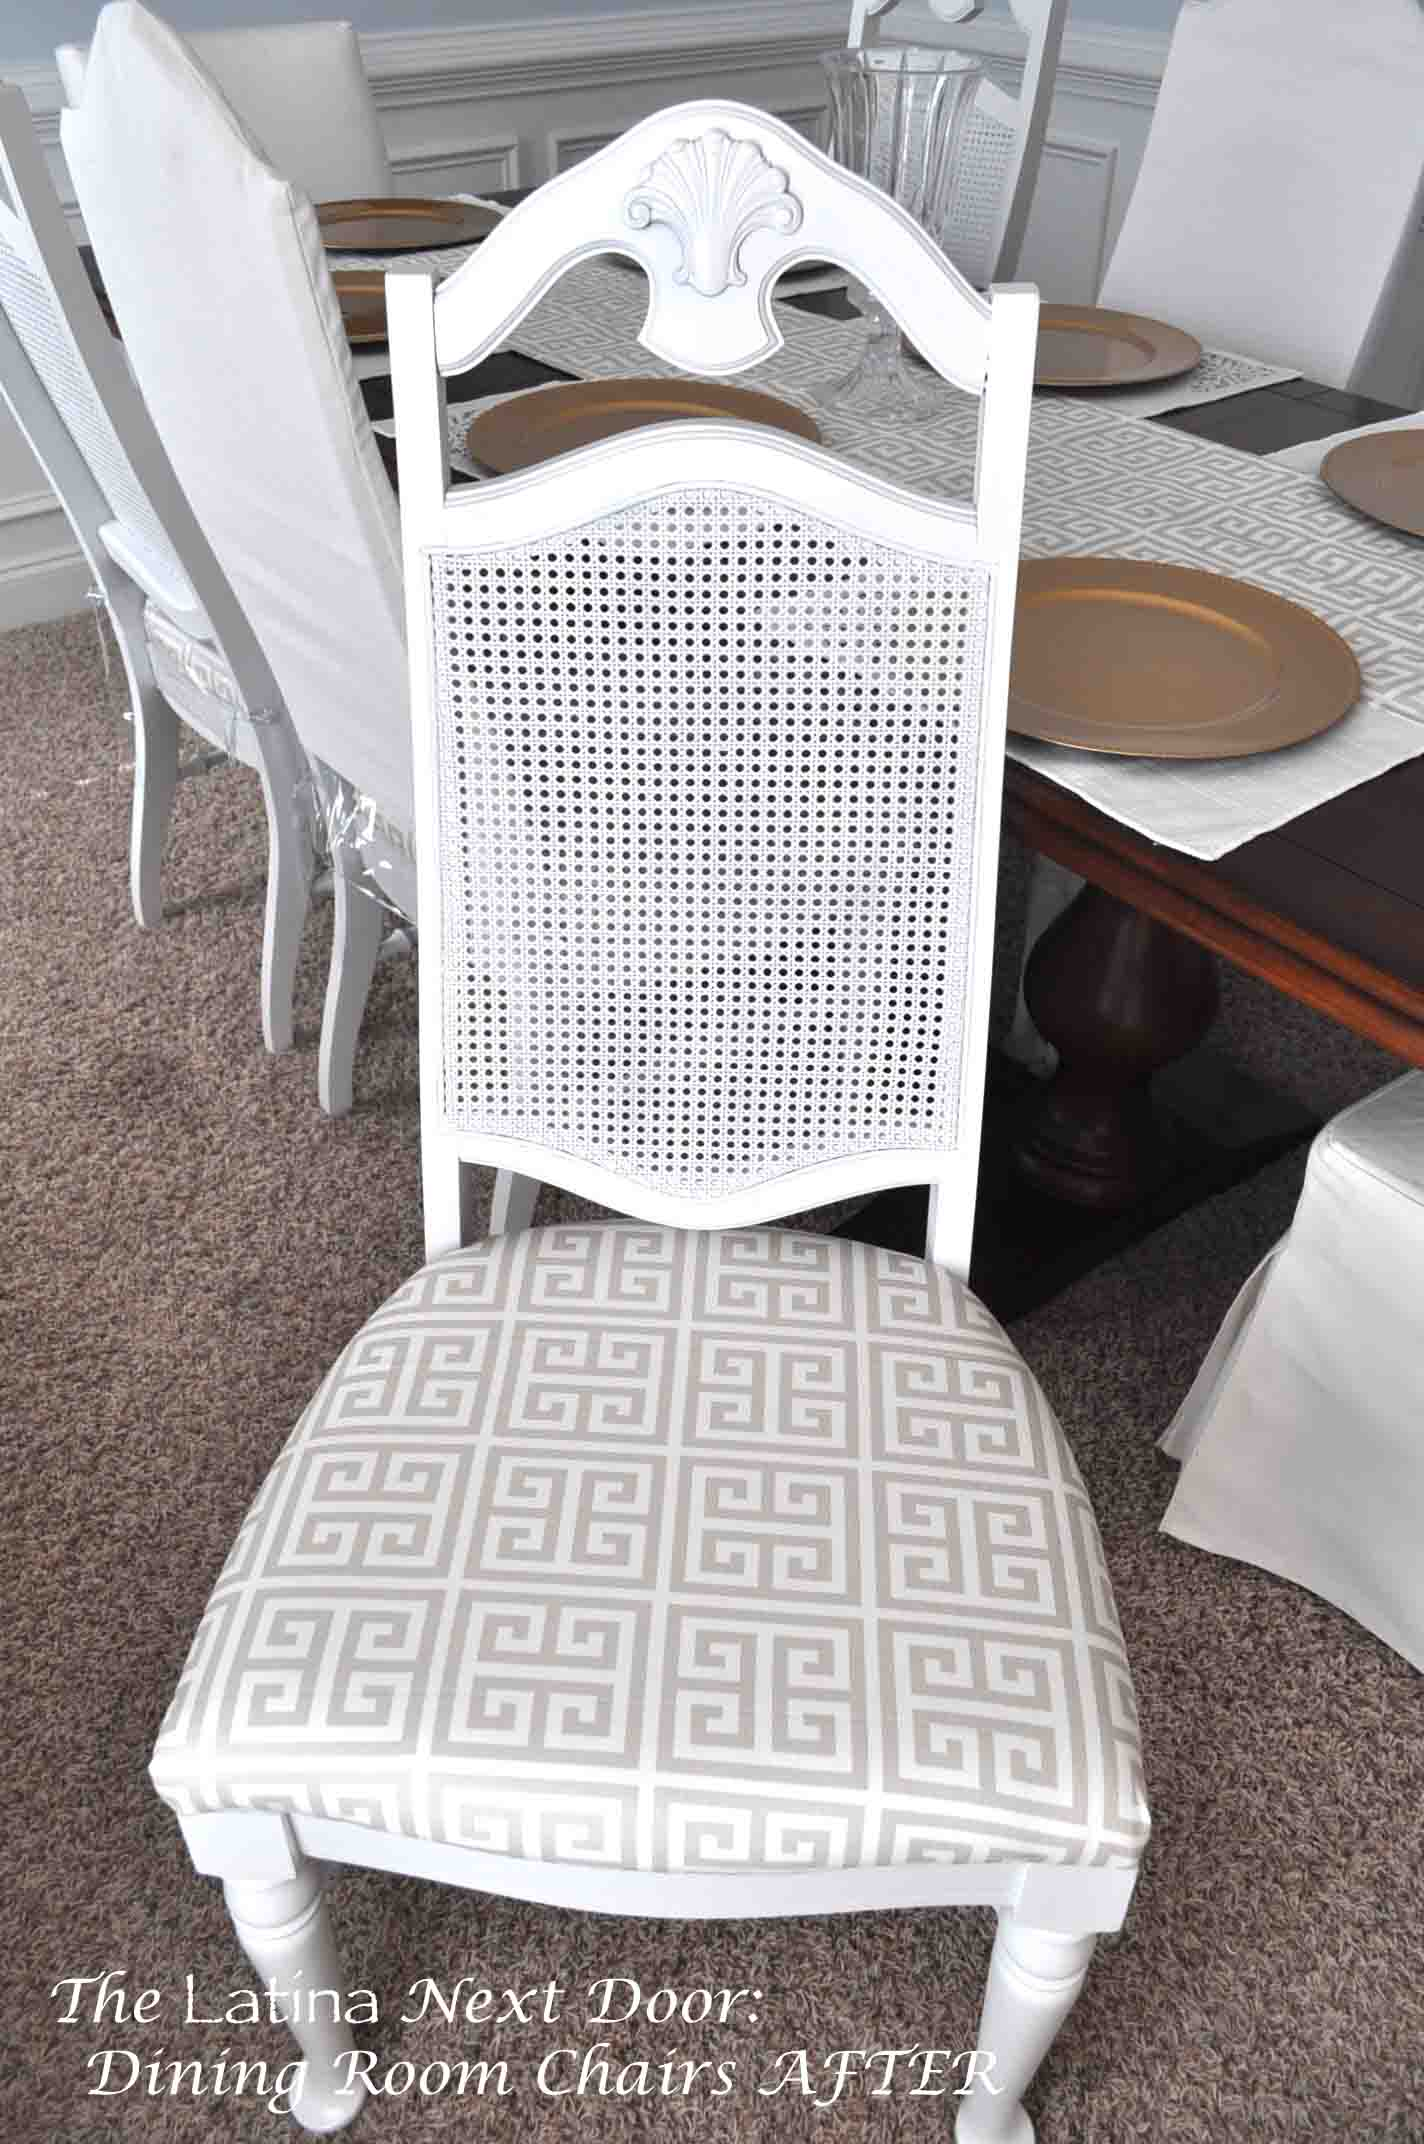 Dining Chairs 19 Dining Chairs Before and After